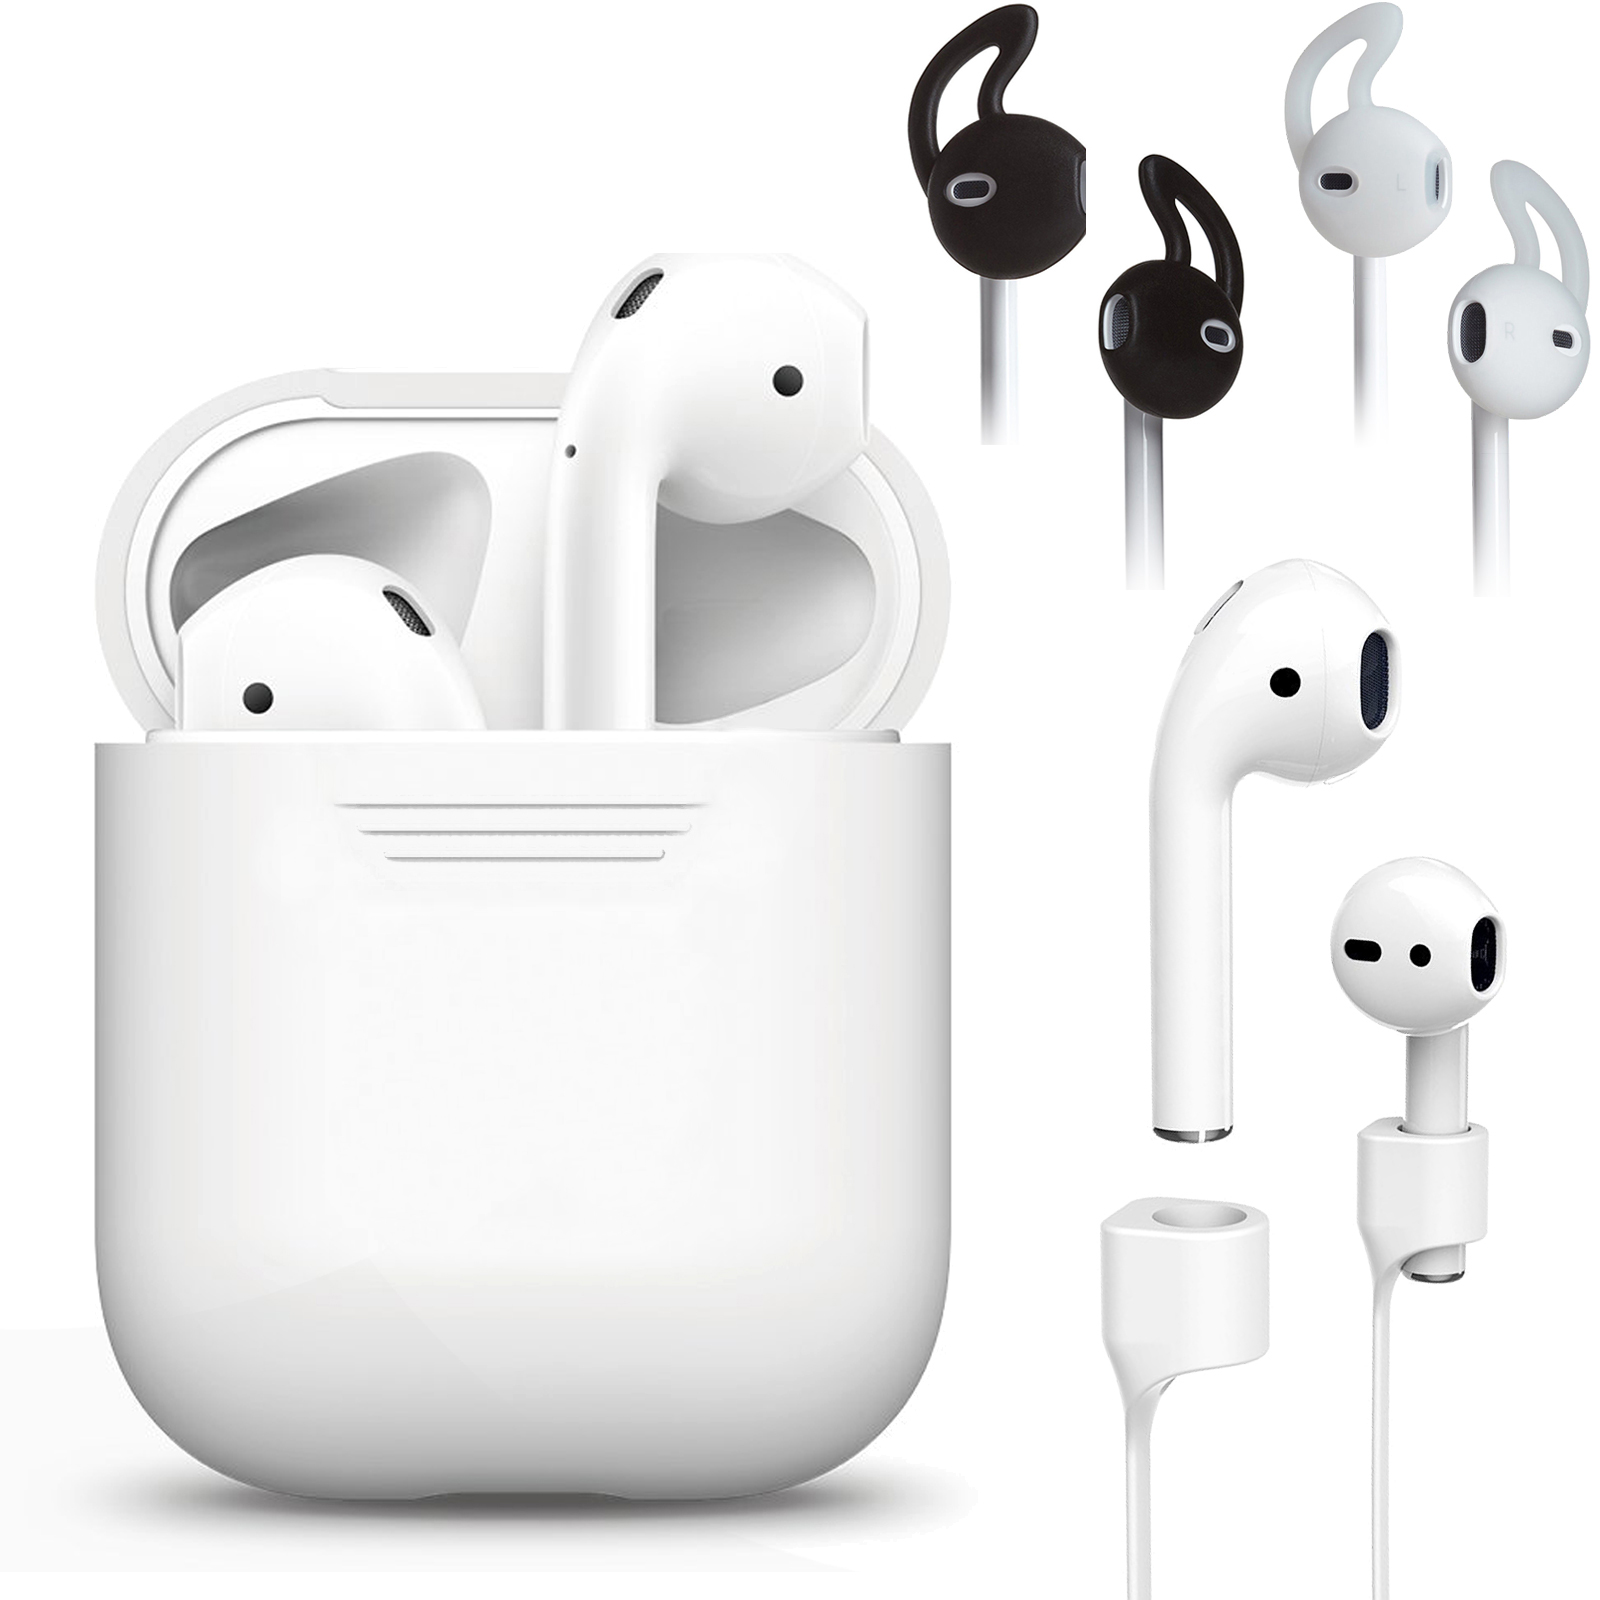 EEEKit 3in1 Protect Kit for Airpods,Silicone Charging Case Protective Cover, Anti Lost Airpods Sport Strap Cable, Earbud